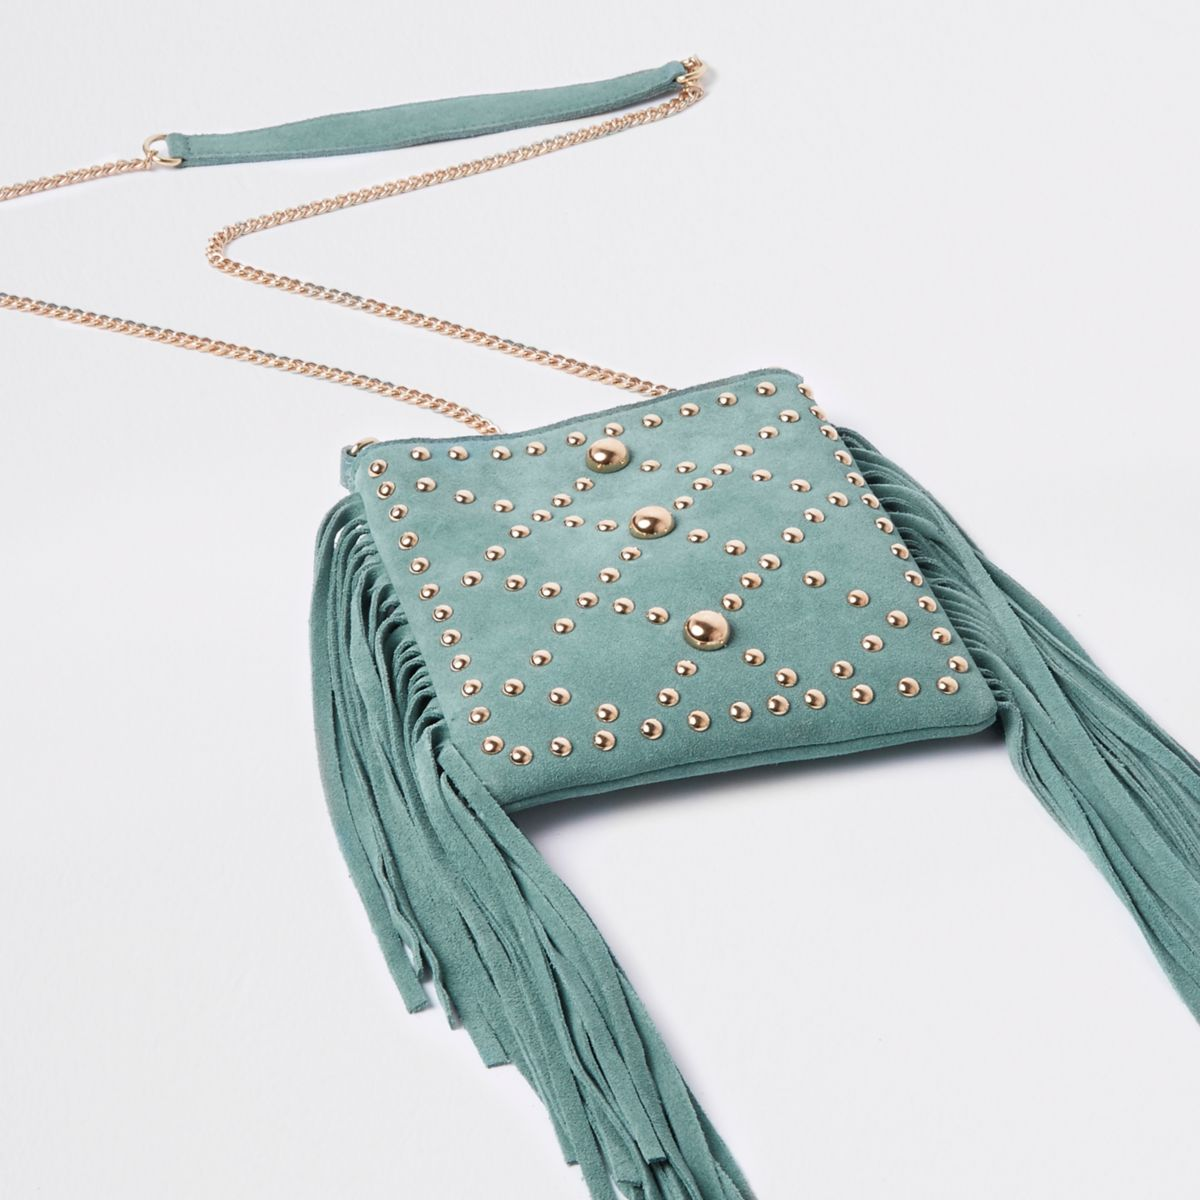 Light green leather tassel cross body bag